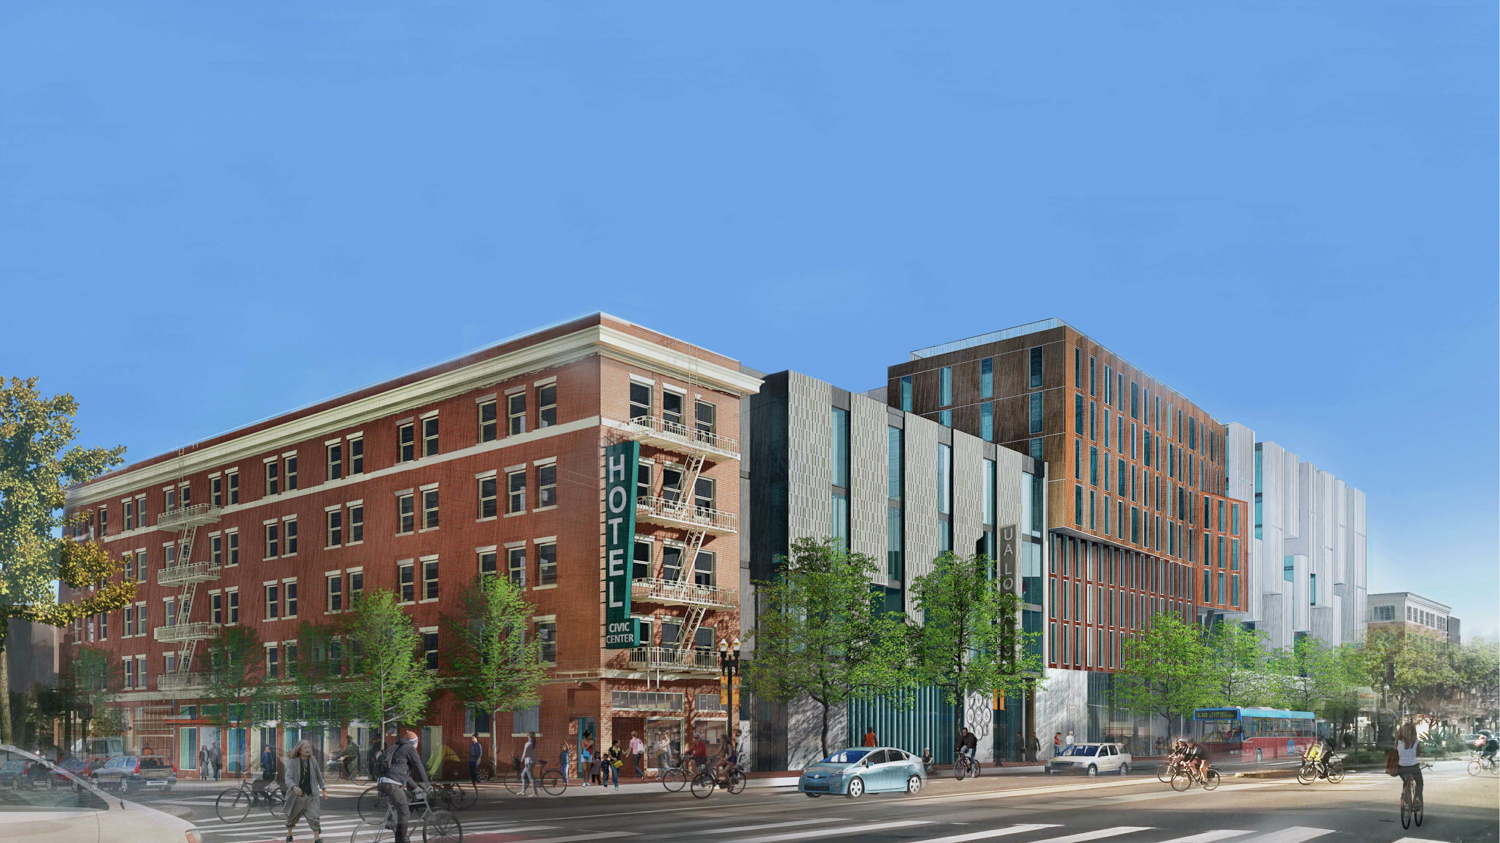 1629 Market Street from Market and 12th Street, design by Kennerly Architects